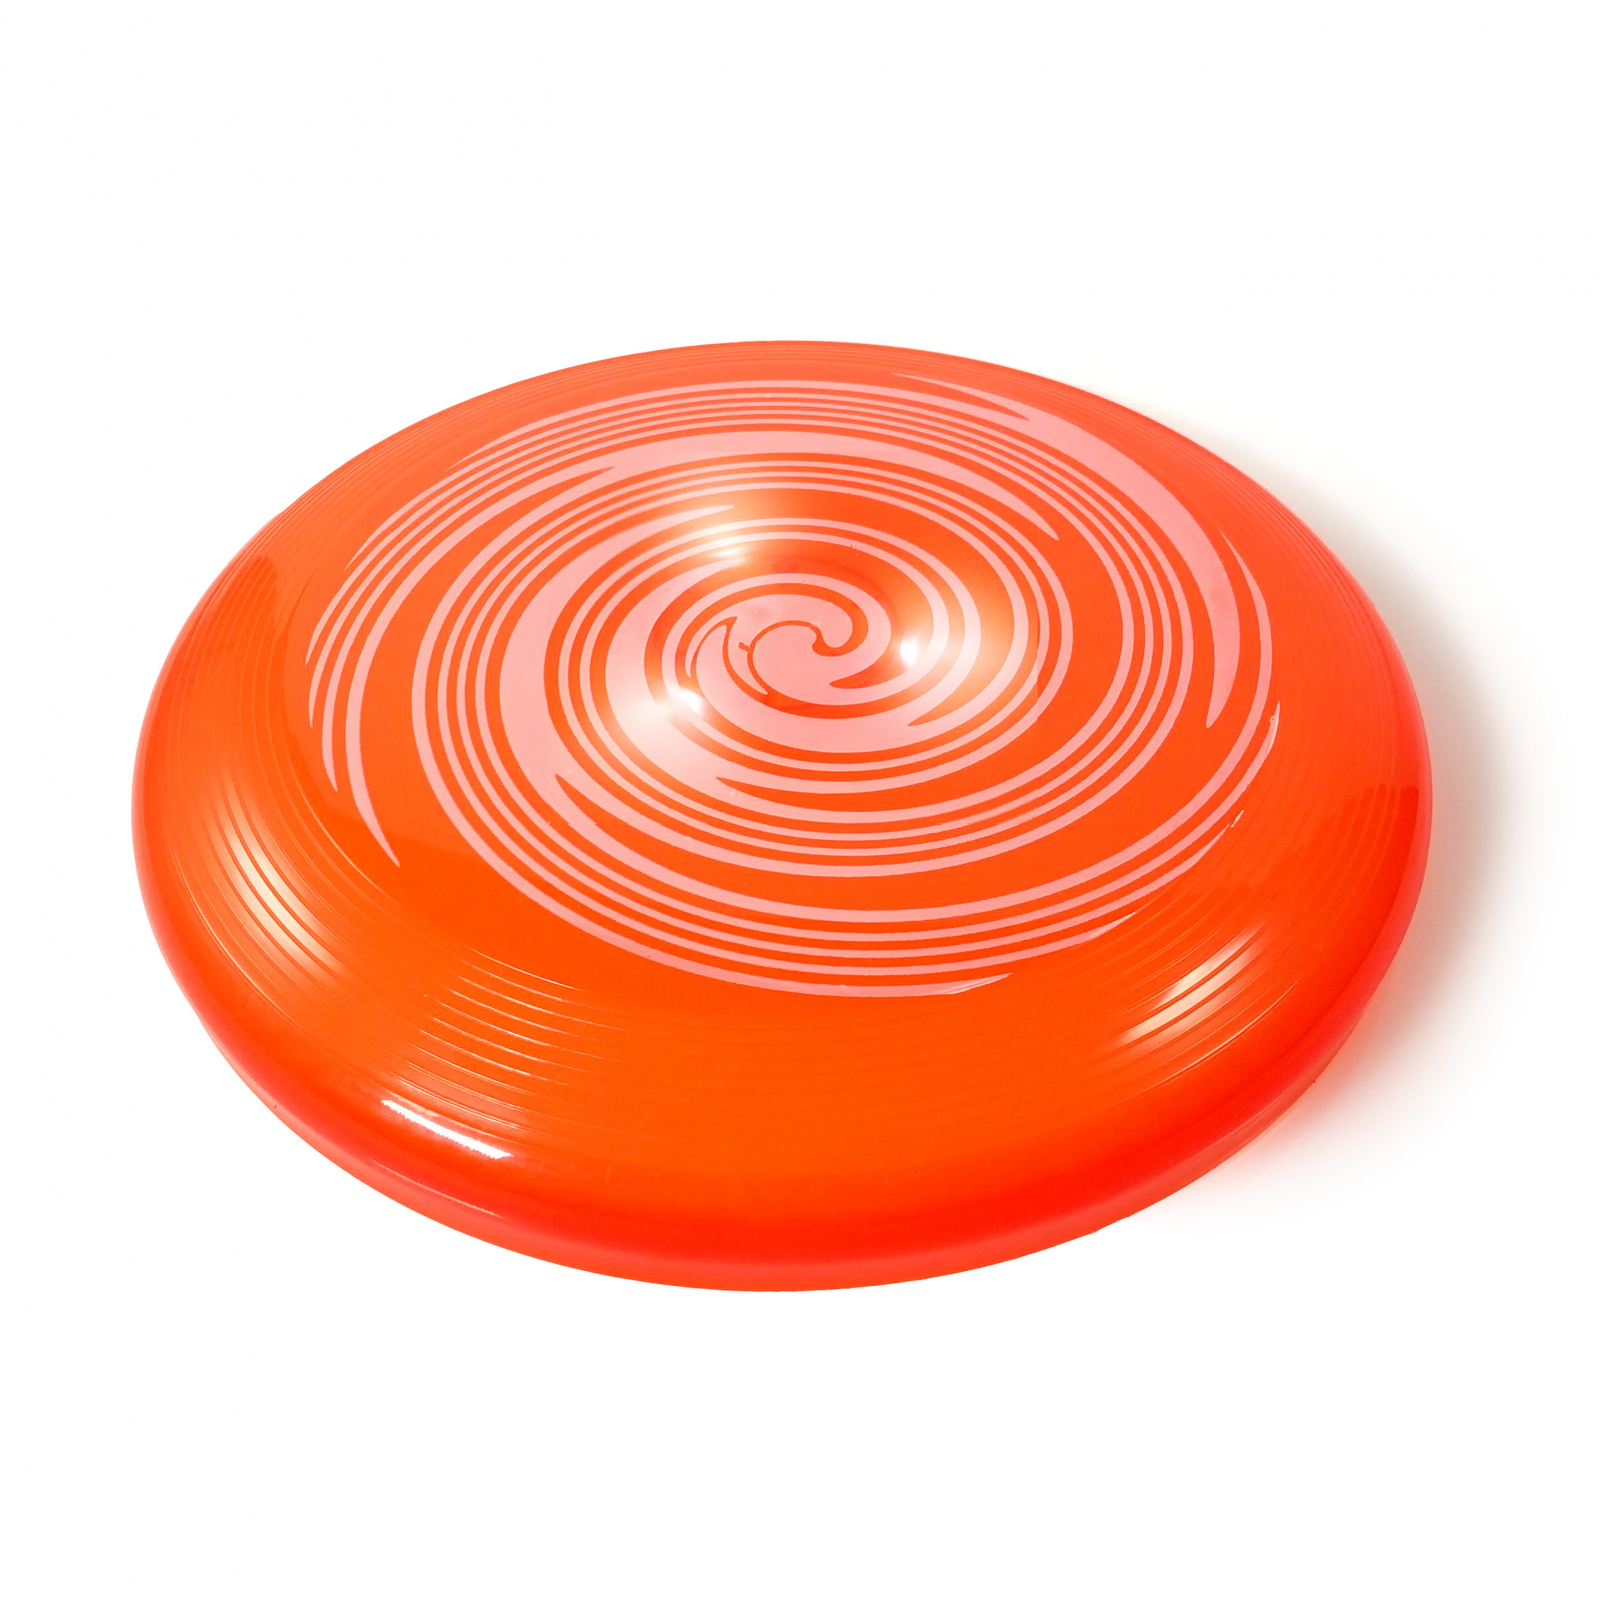 TychoTyke Kids Classic Flying Disc Light Up Toy - Orange